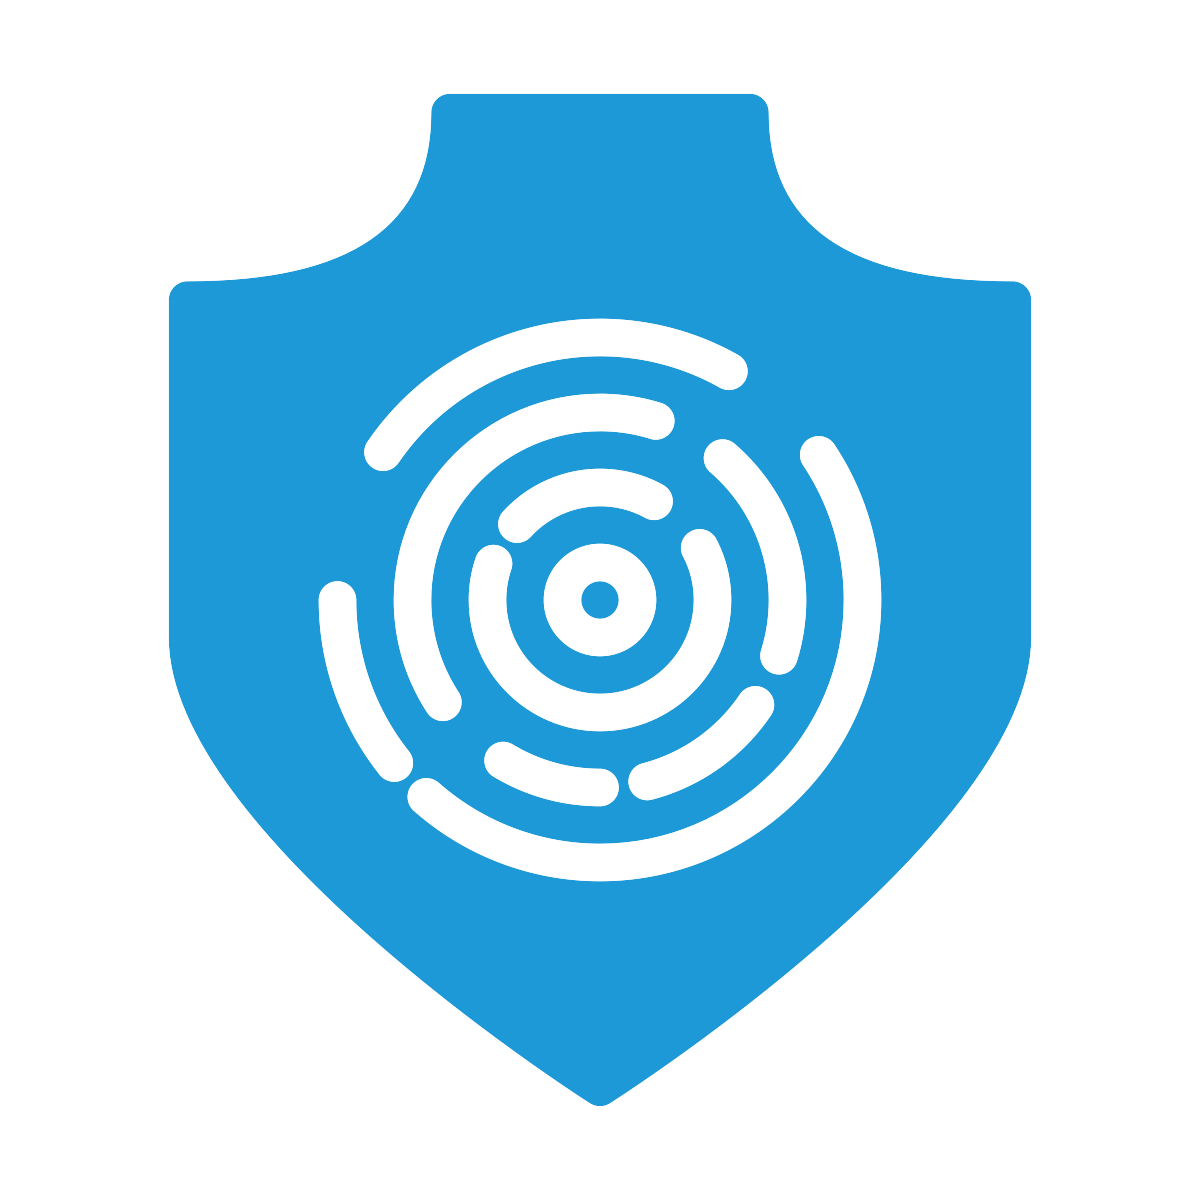 Security Shield With Fingerprint